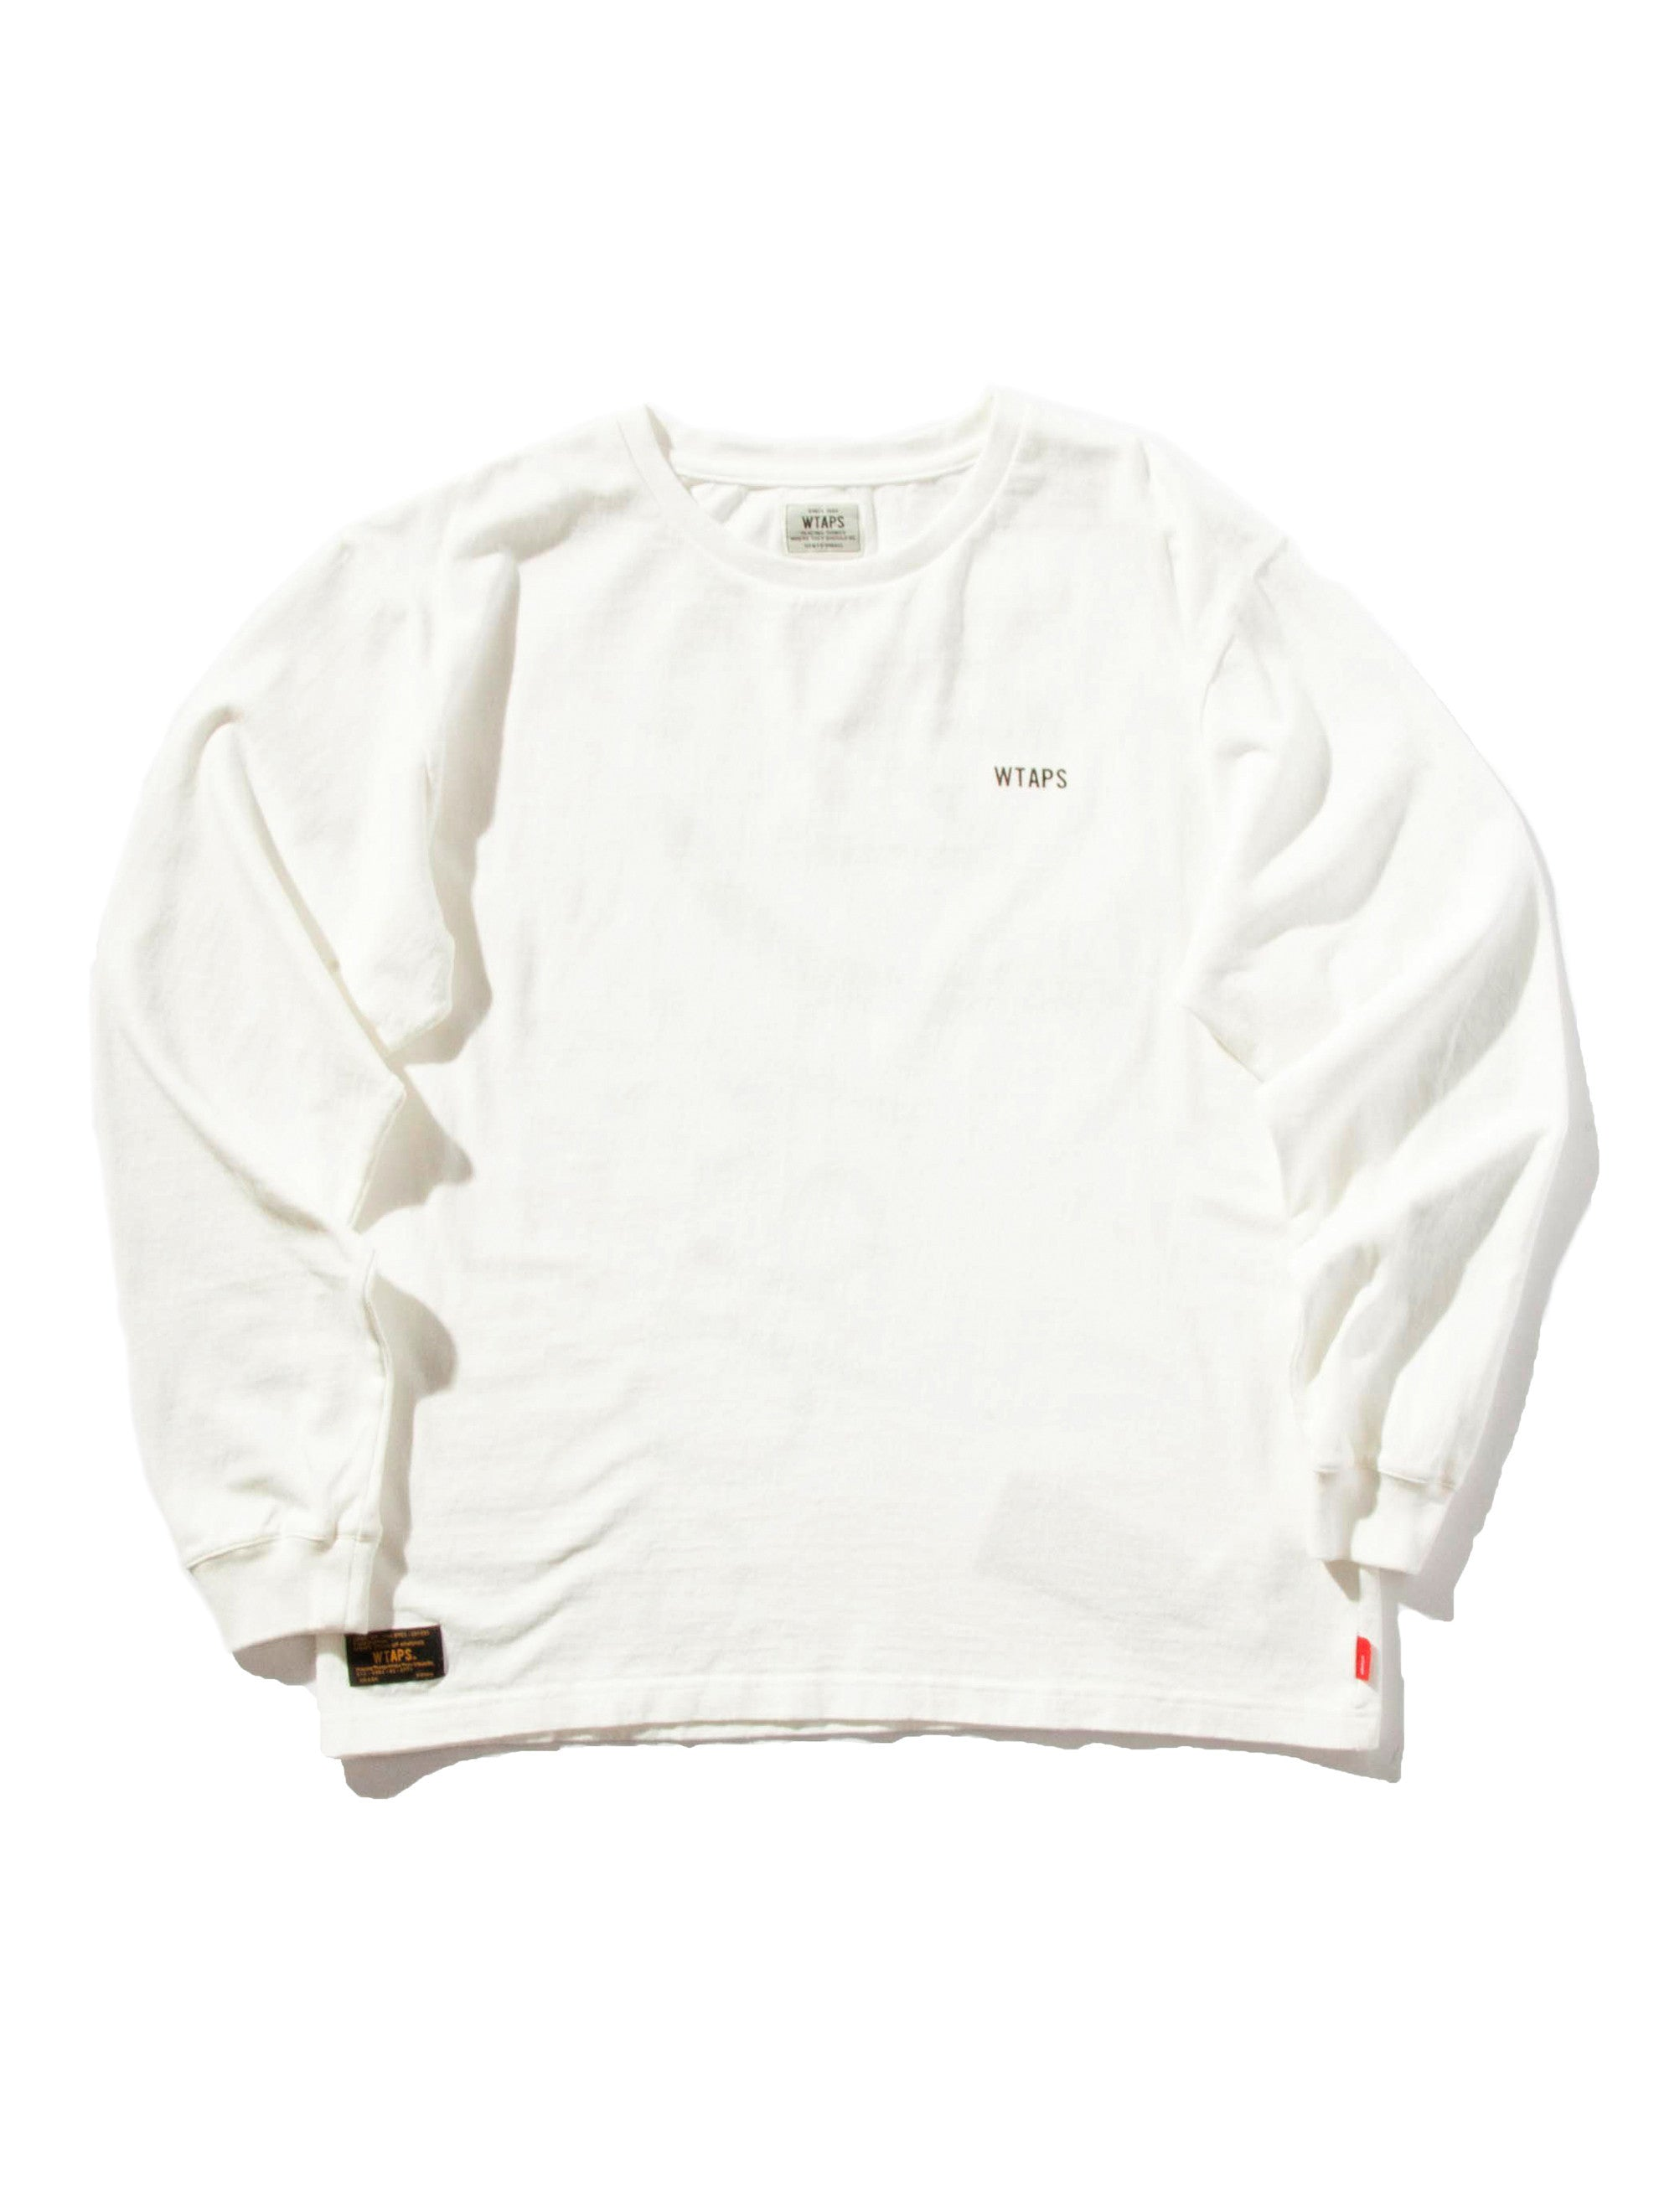 White Design LS GPS T-Shirt (Loop Wheel) 10